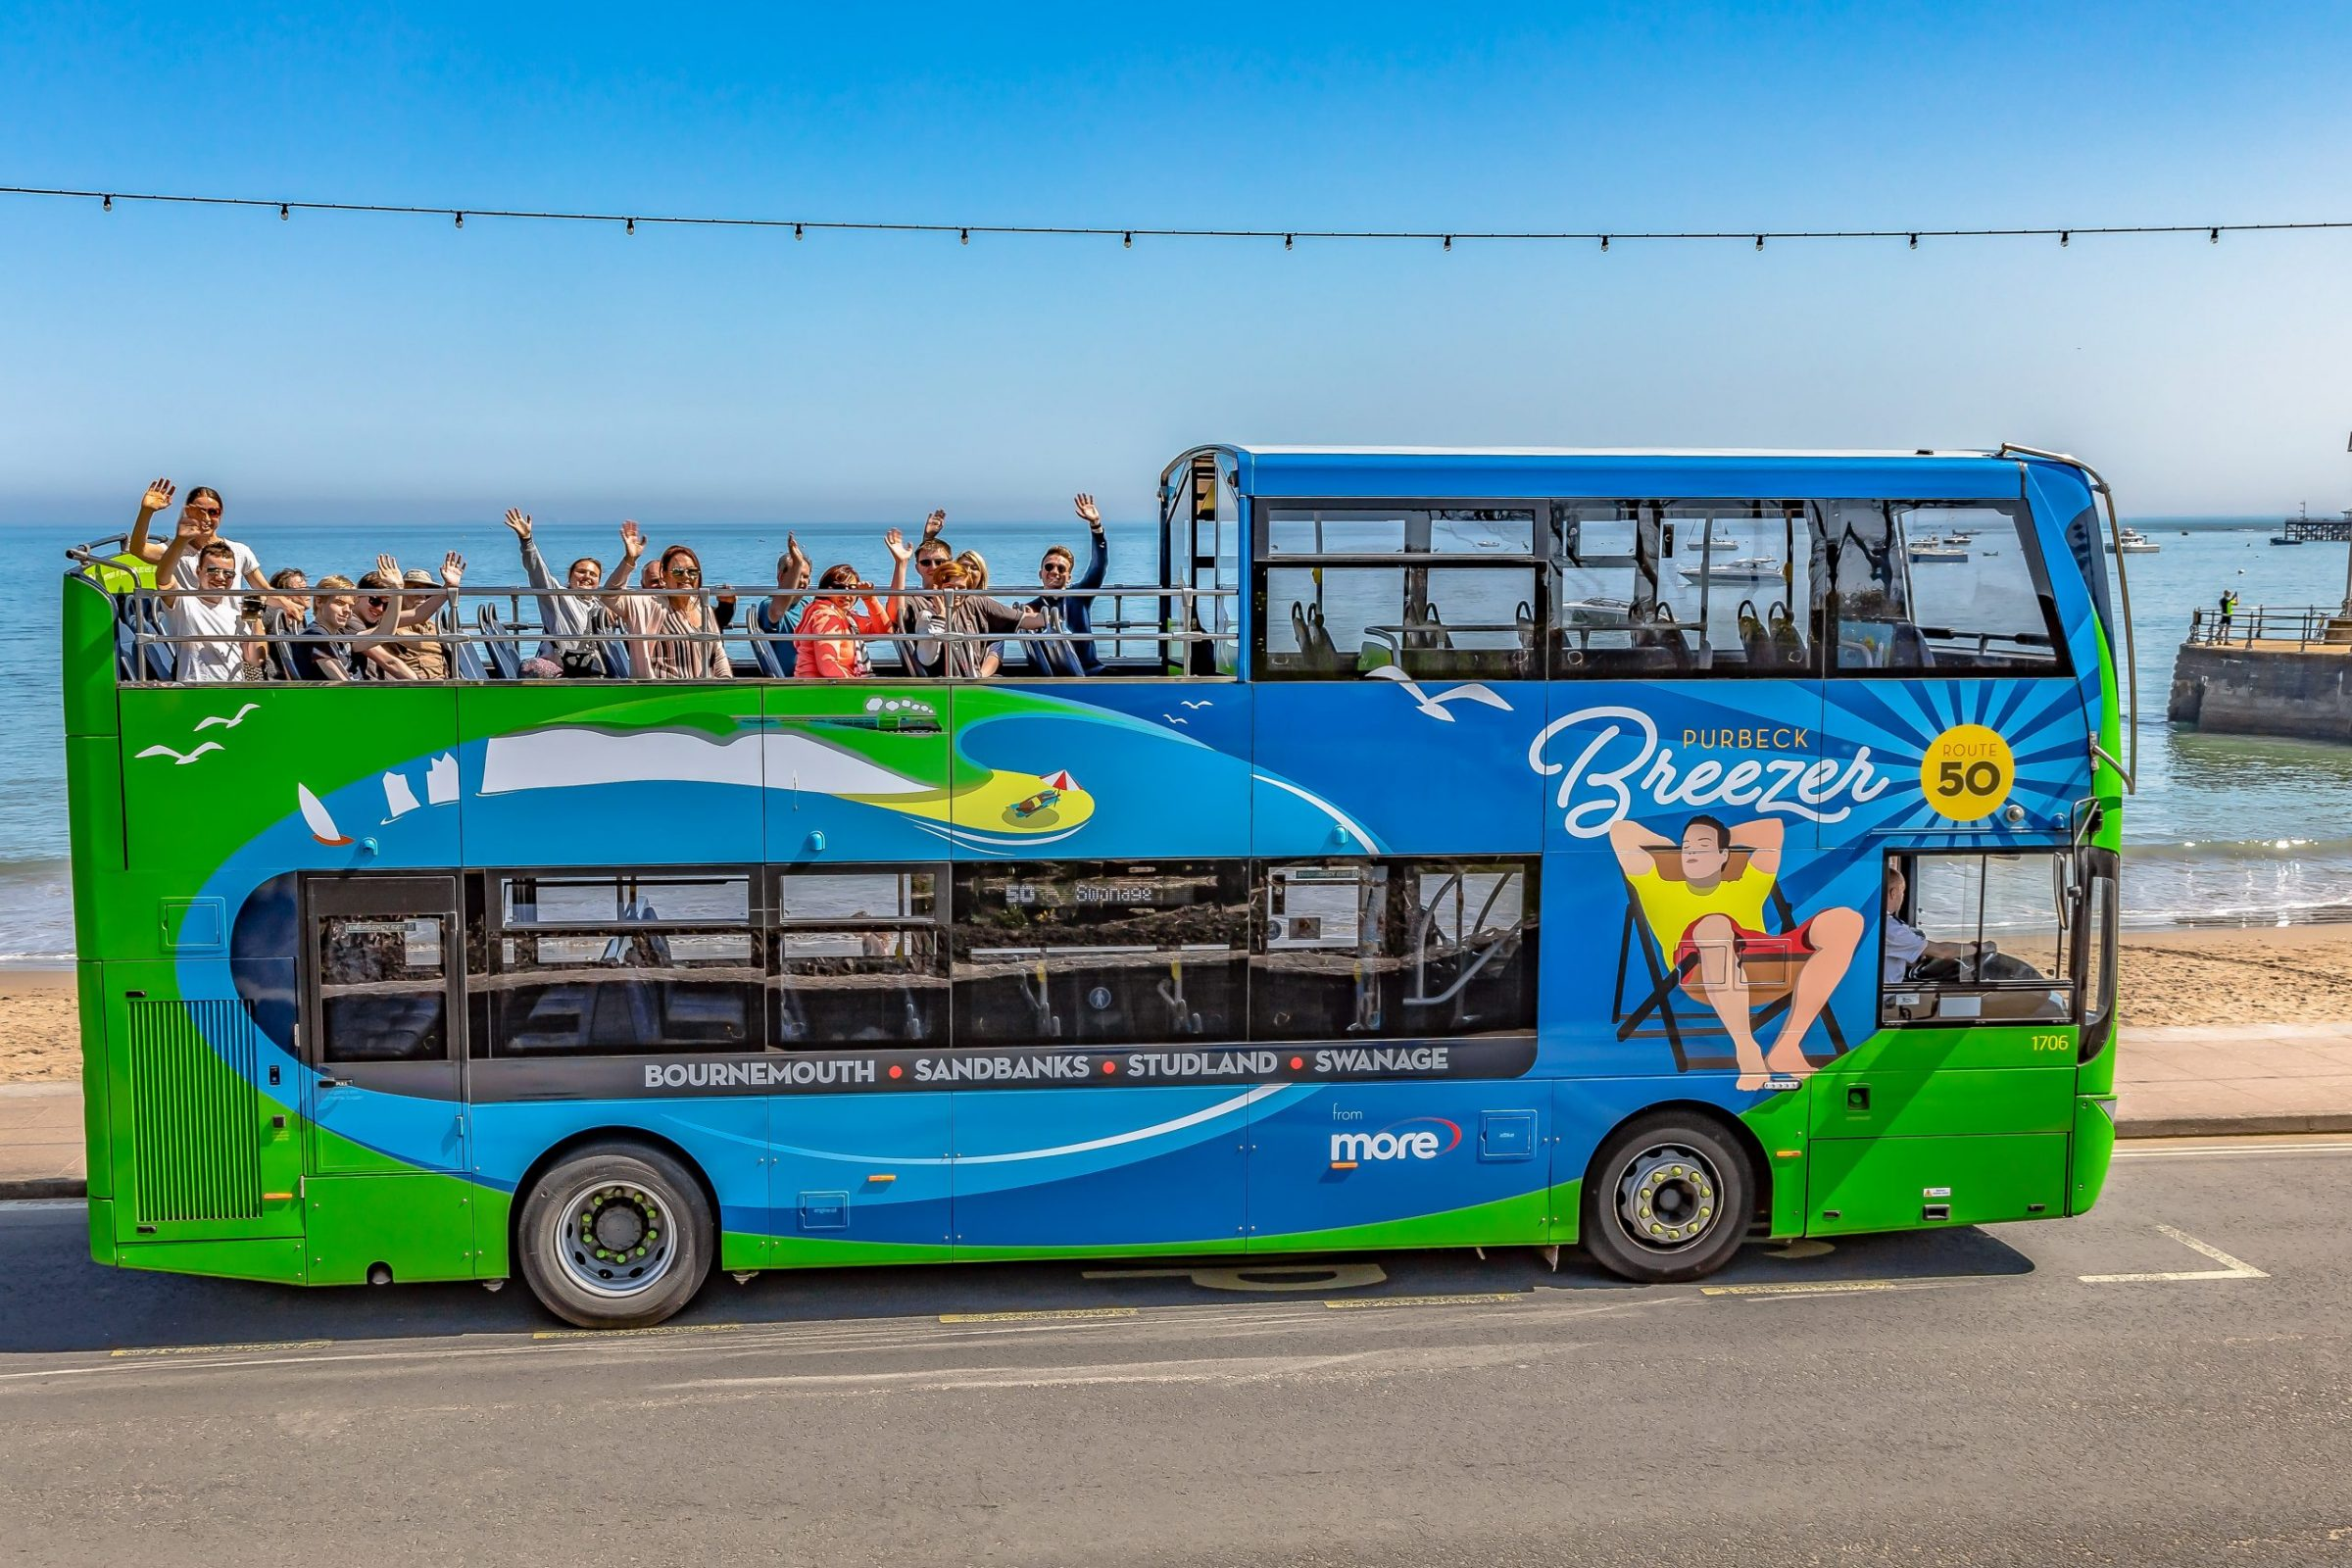 Purbeck Breezer bus route 50